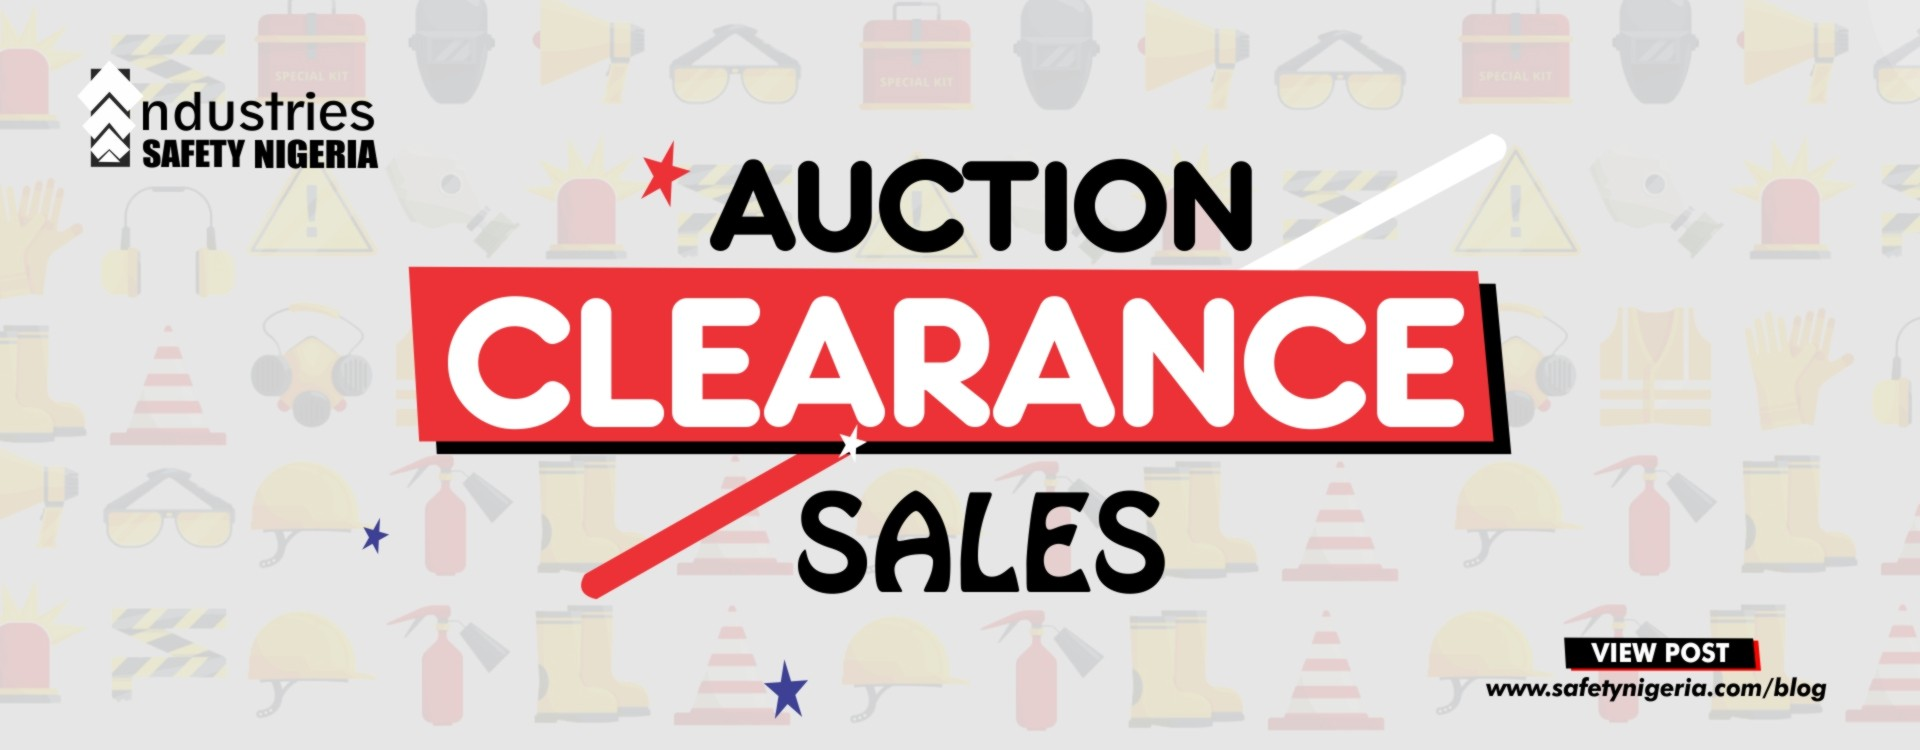 Auction/Clearance Sales